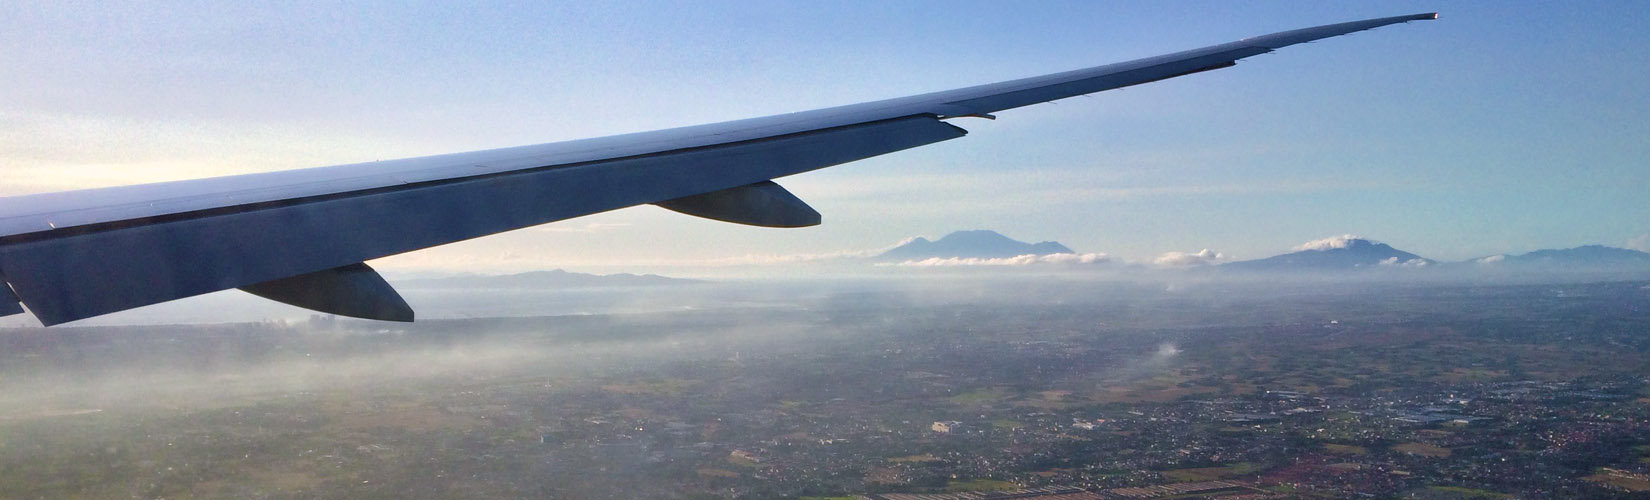 Tips and Tricks to Find Cheap Flights :: I've Been Bit! A Travel Blog